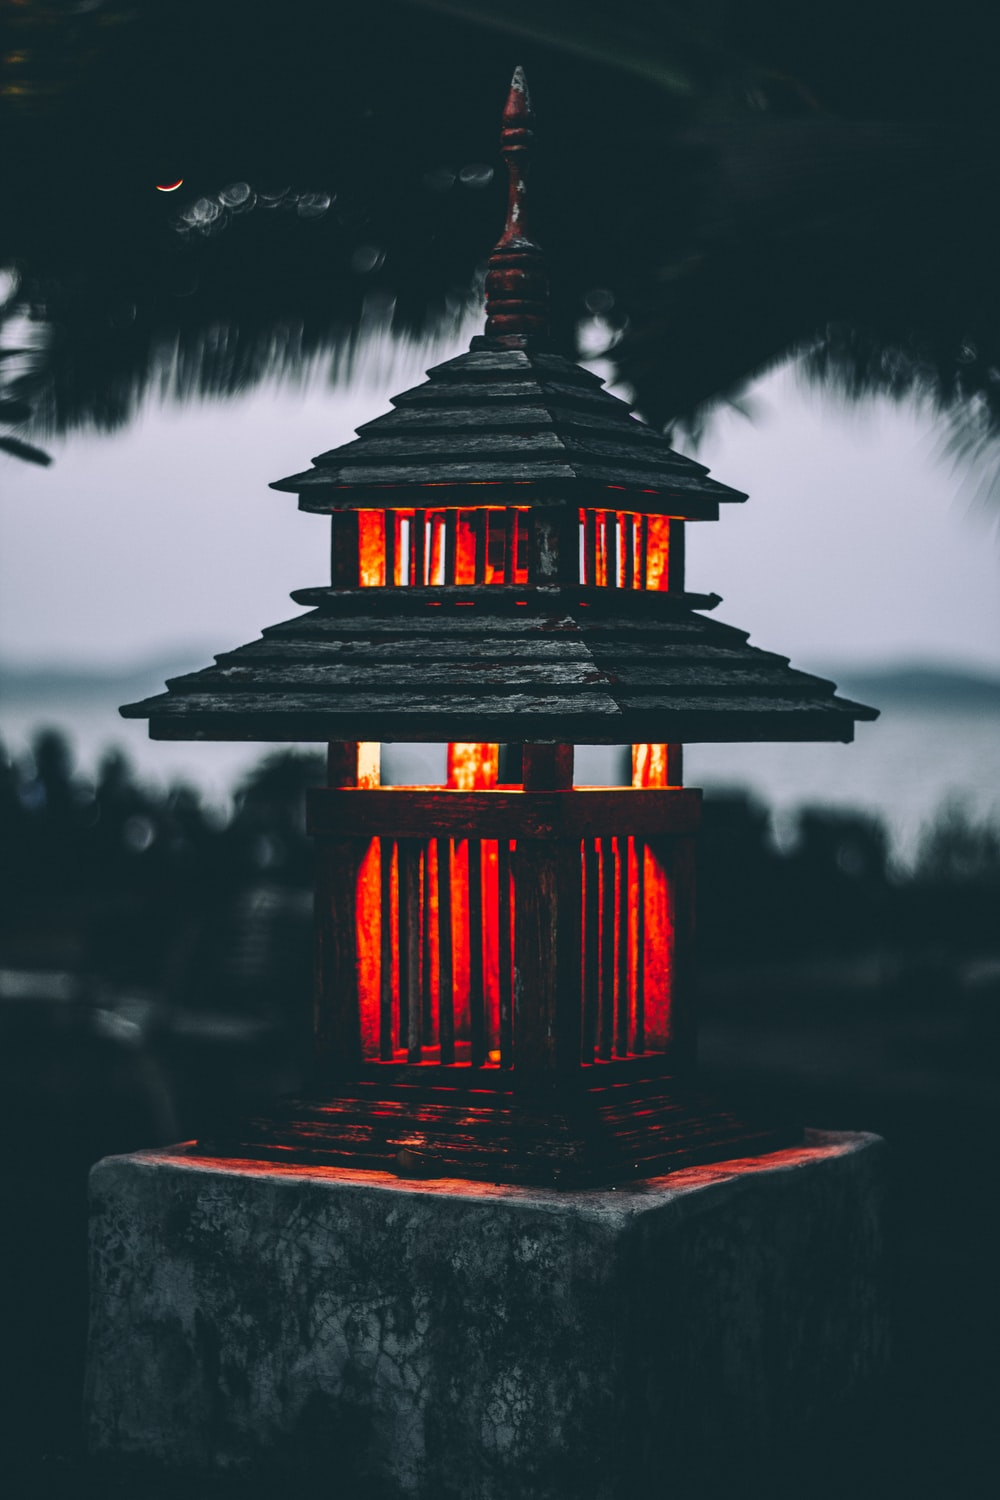 red outdoor lamp on post